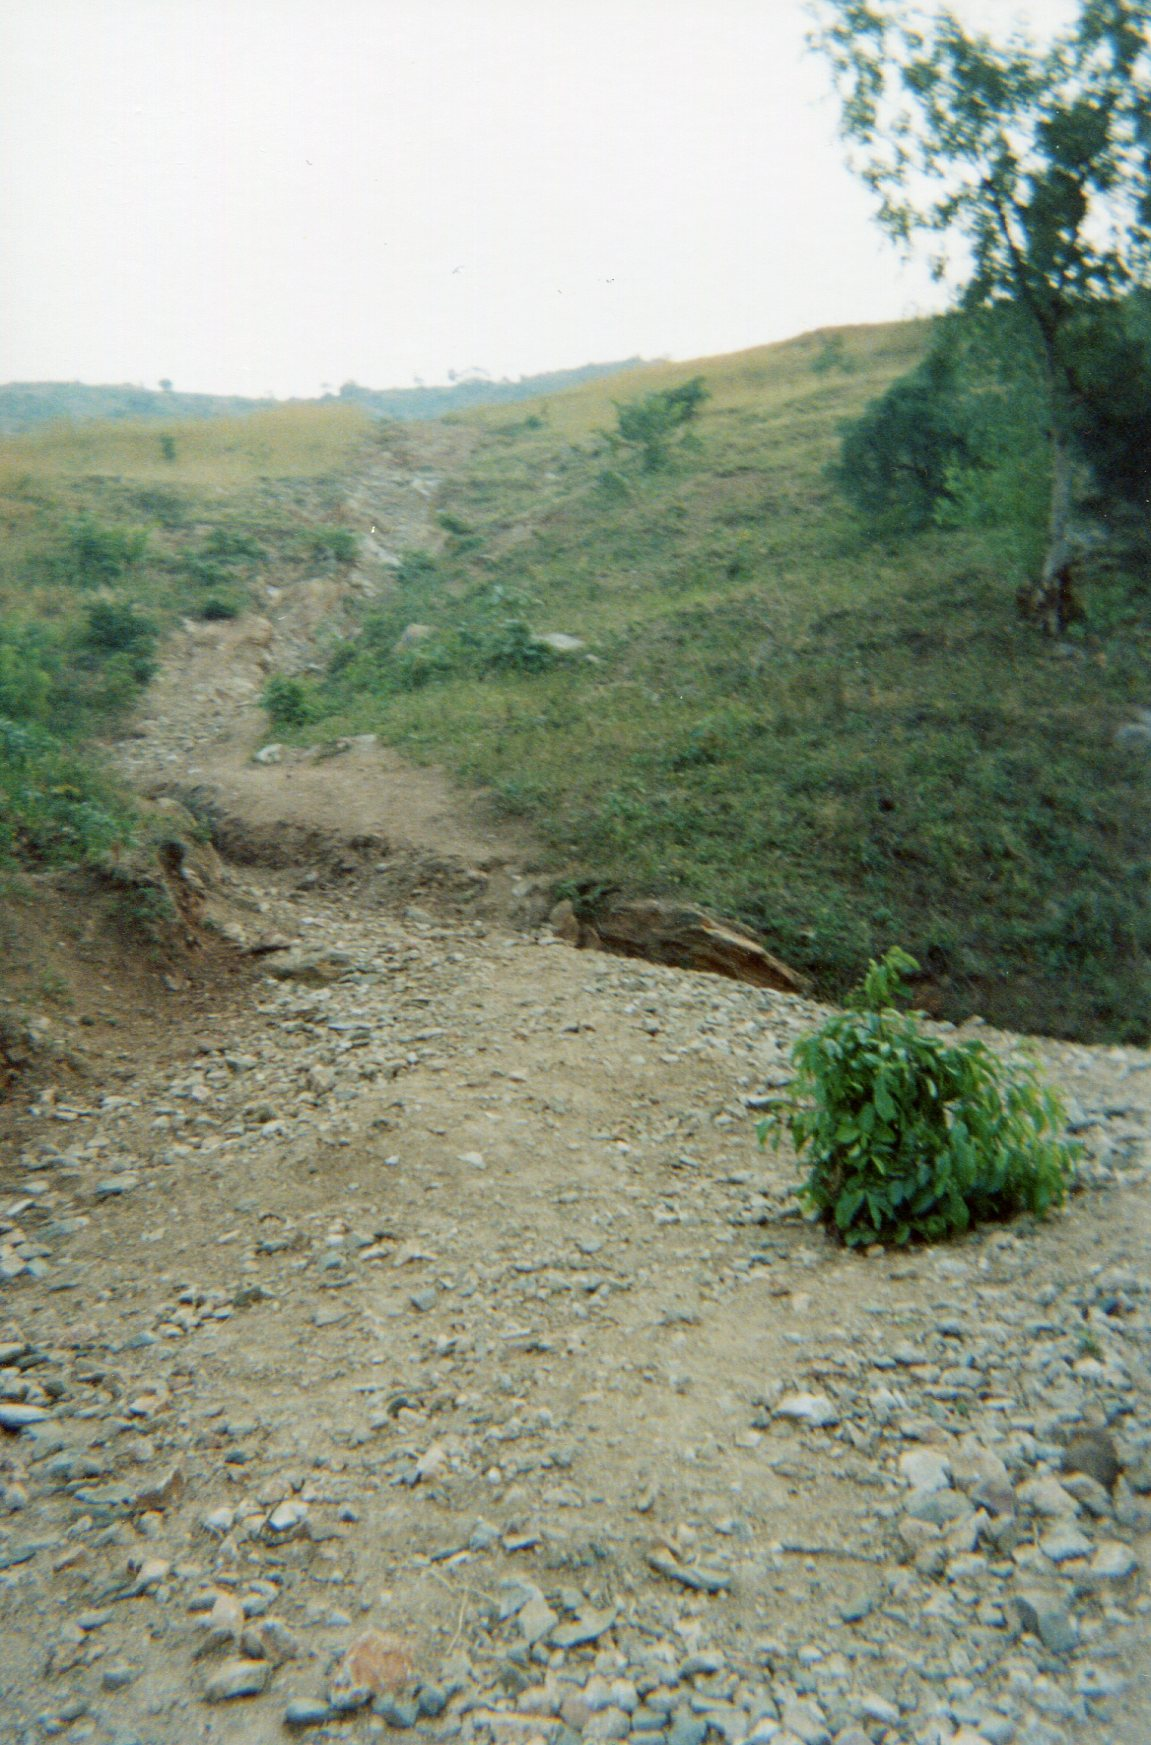 This shows the road where the children passed before joining the camp for the armed groups.